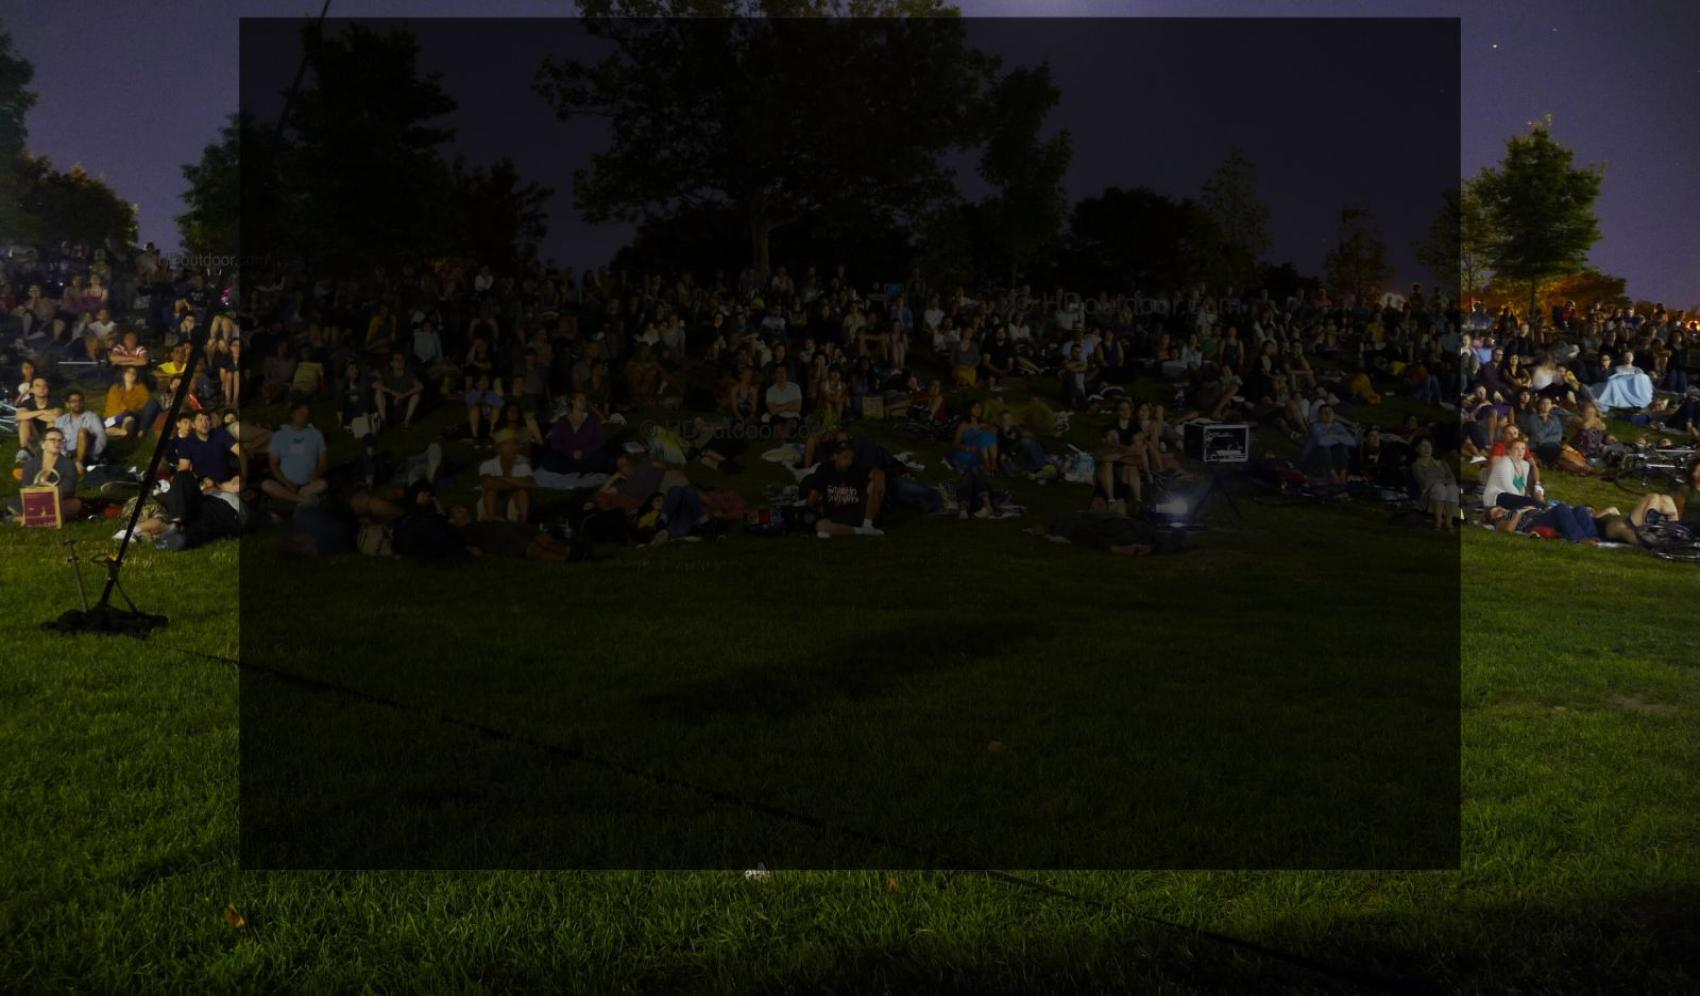 Full Service Outdoor Movies On Giant Hd Screens Rentals